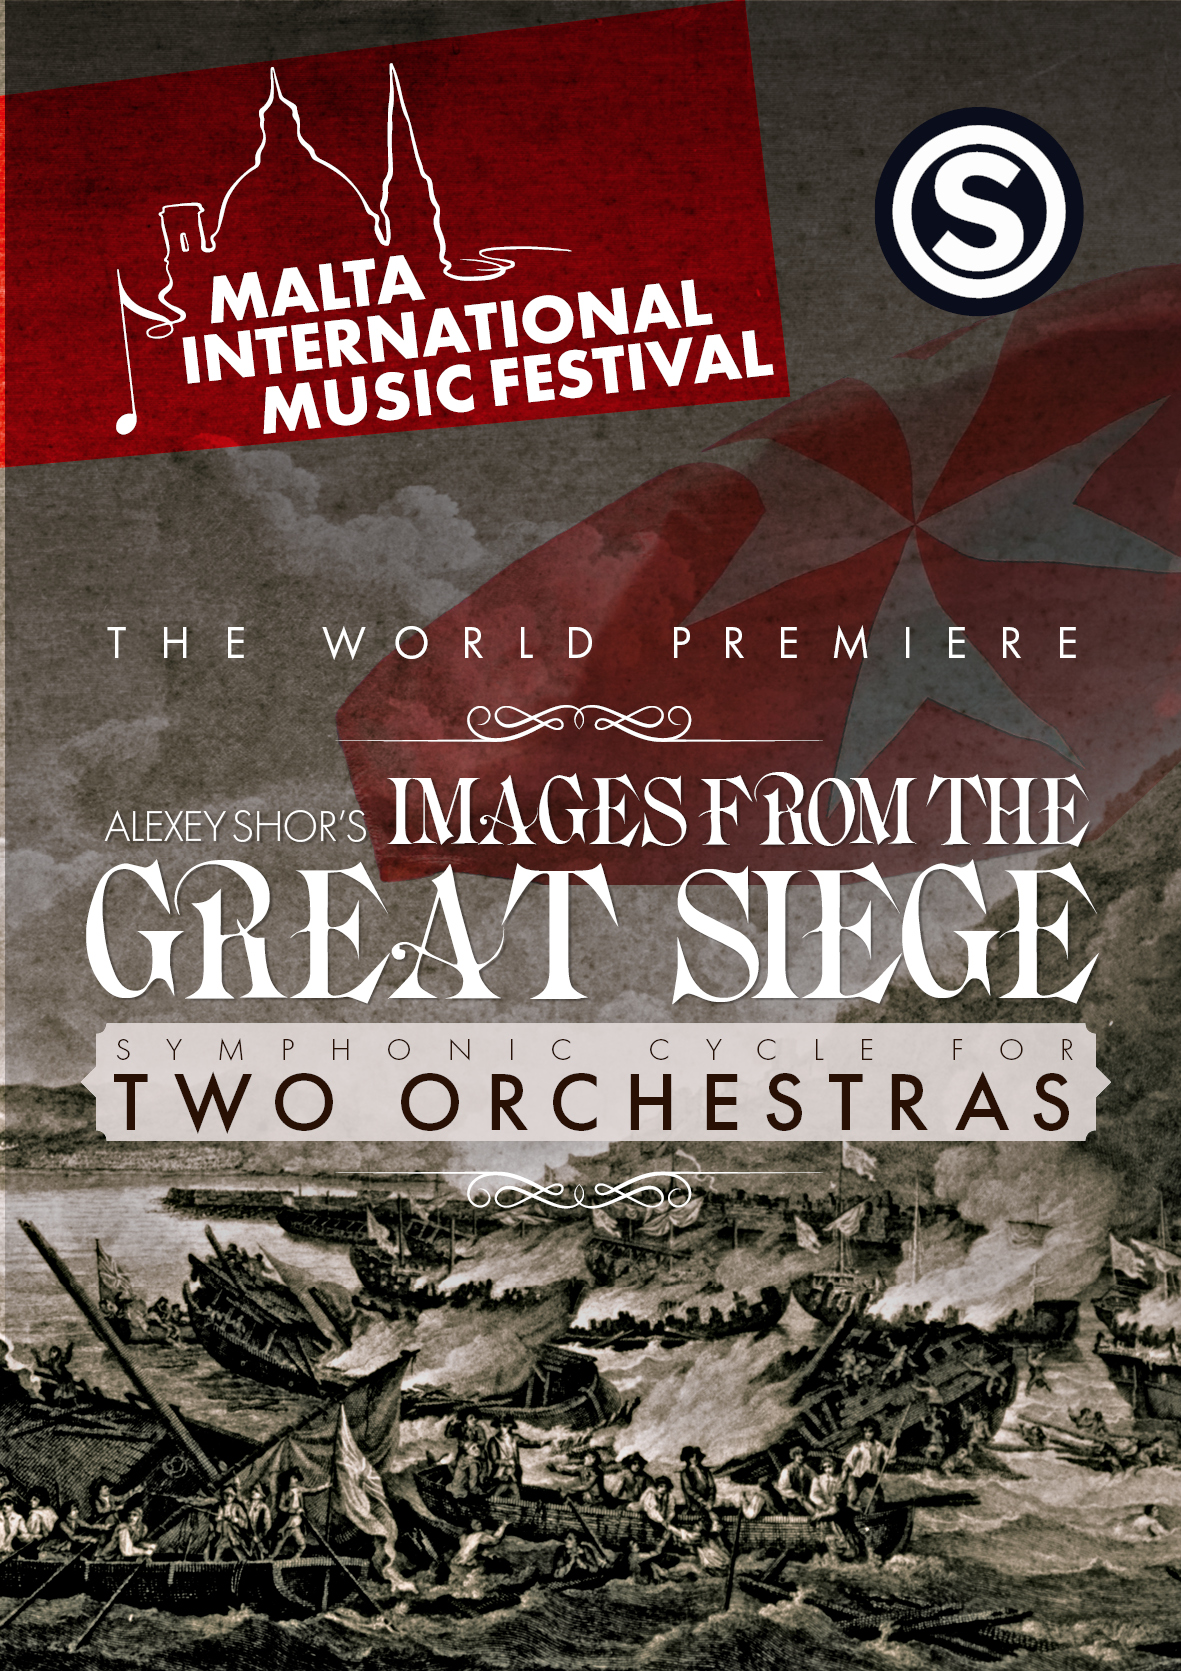 The world premiere of 'Images from the Great Siege'